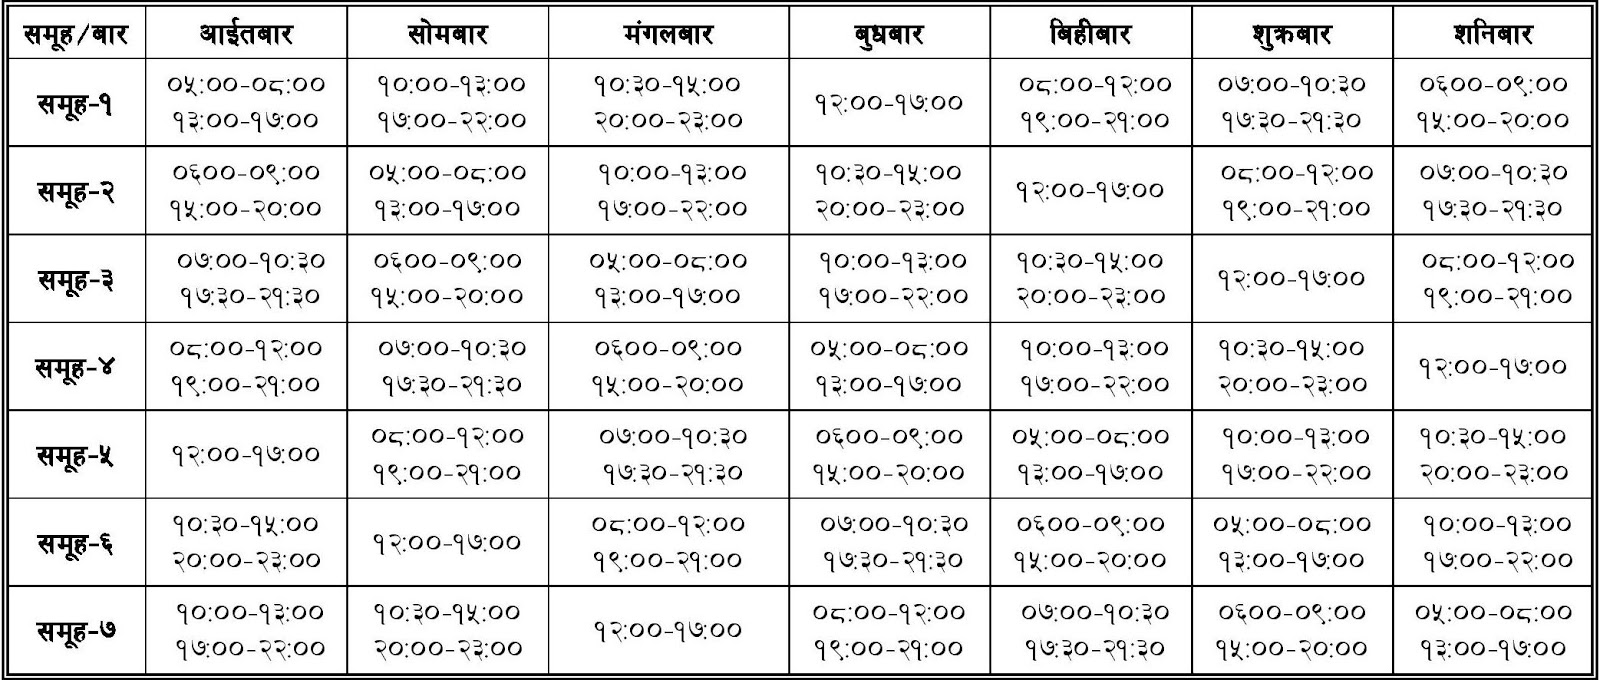 essay on load shedding in nepal